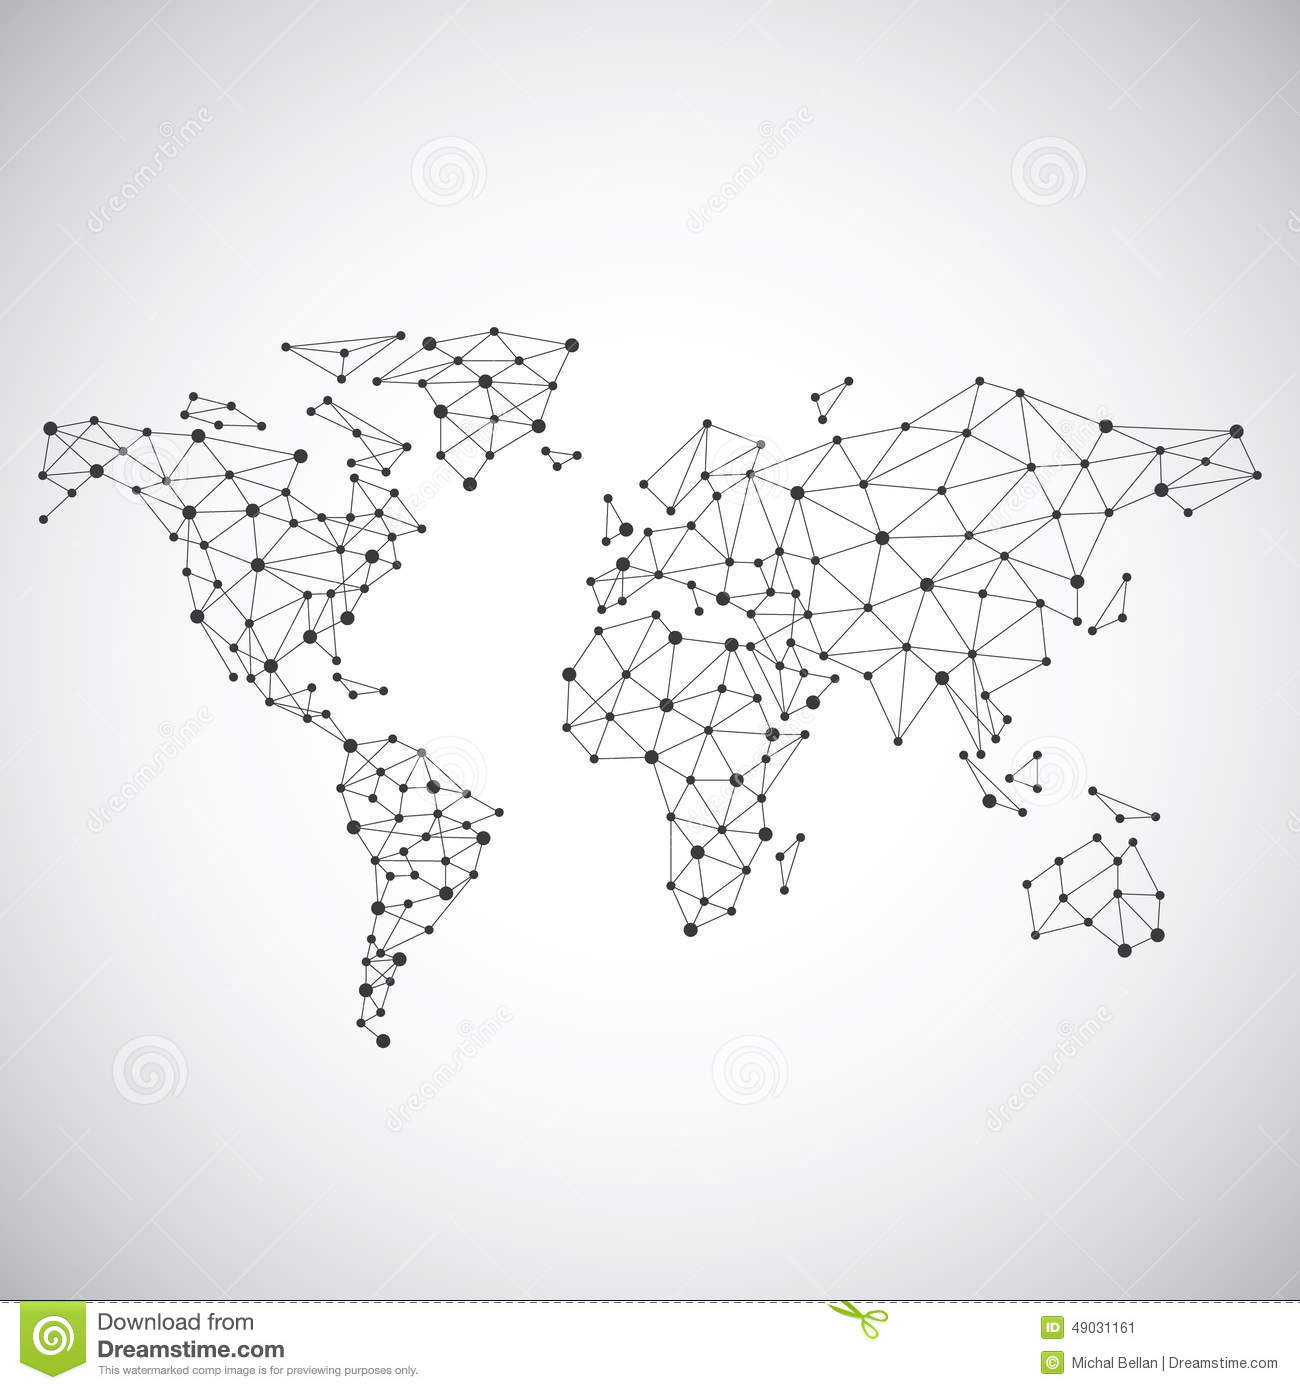 Stylized low poly world map concept with wired construction of stylized low poly world map concept with wired construction of connection concept globes business background gumiabroncs